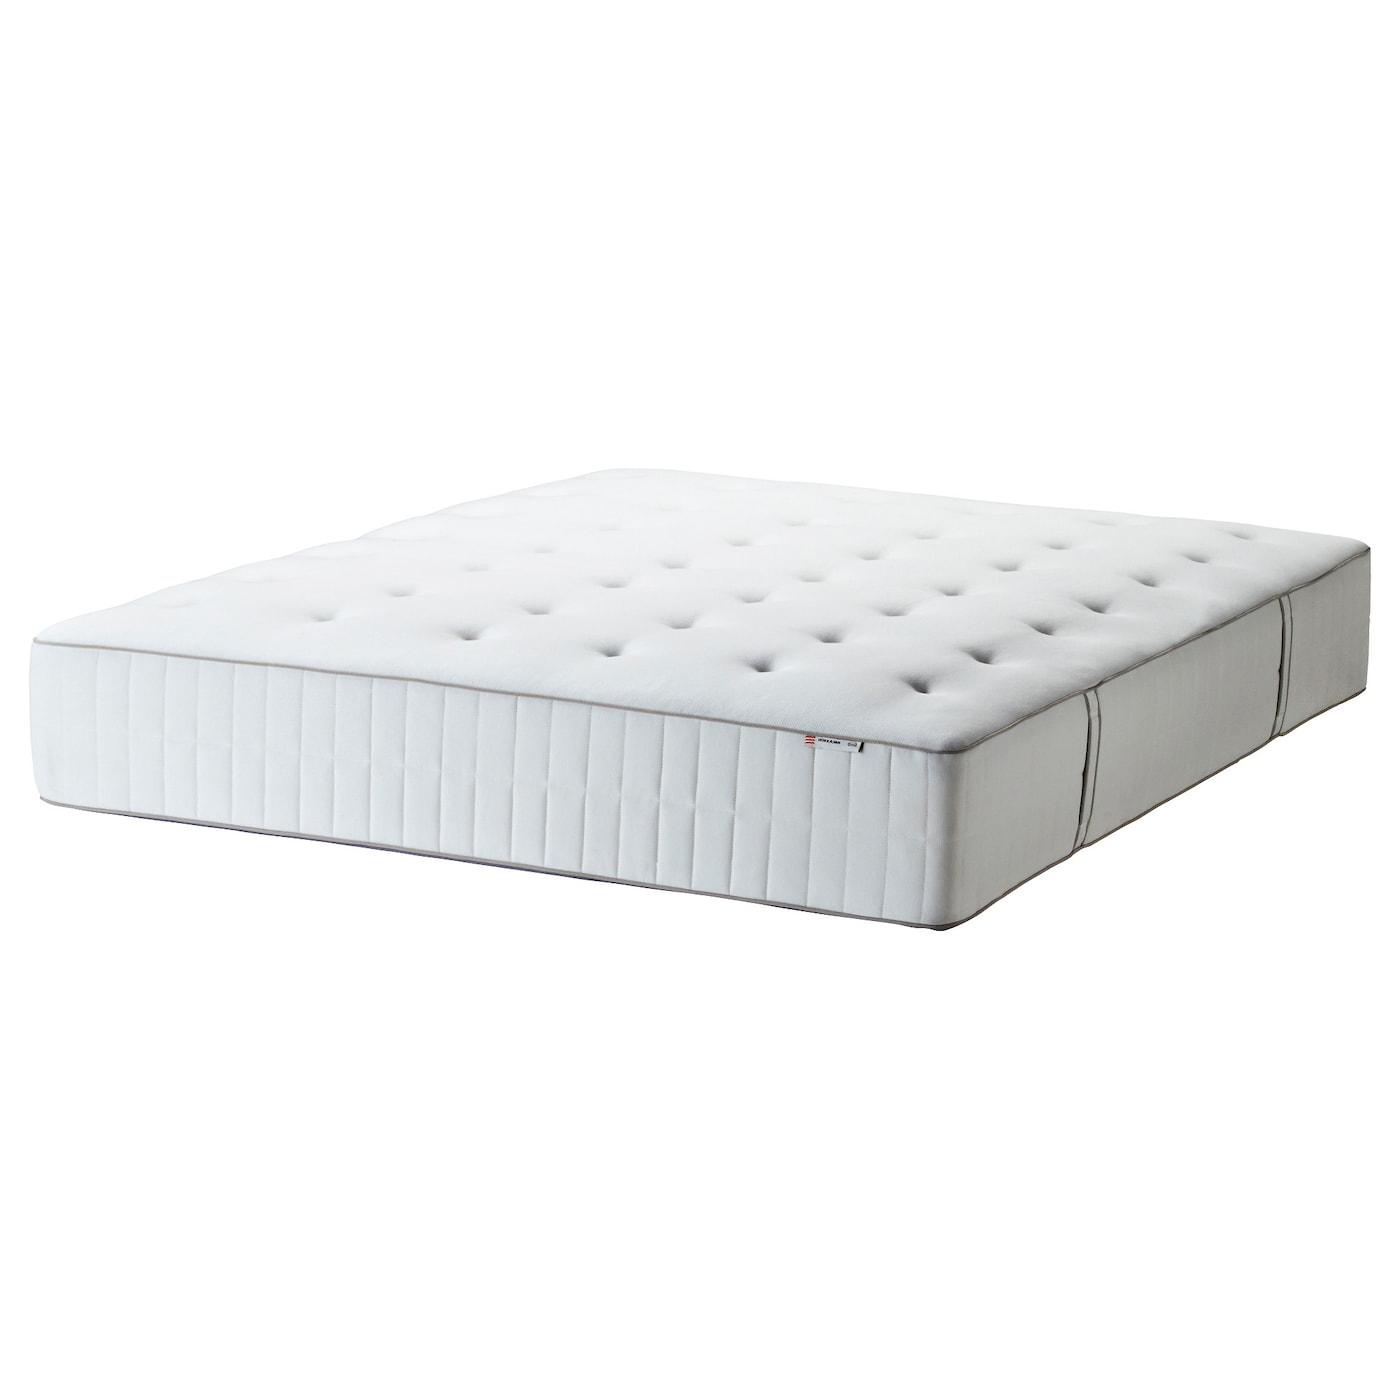 hokk sen matelas ressorts ensach s mi ferme blanc 160 x 200 cm ikea. Black Bedroom Furniture Sets. Home Design Ideas